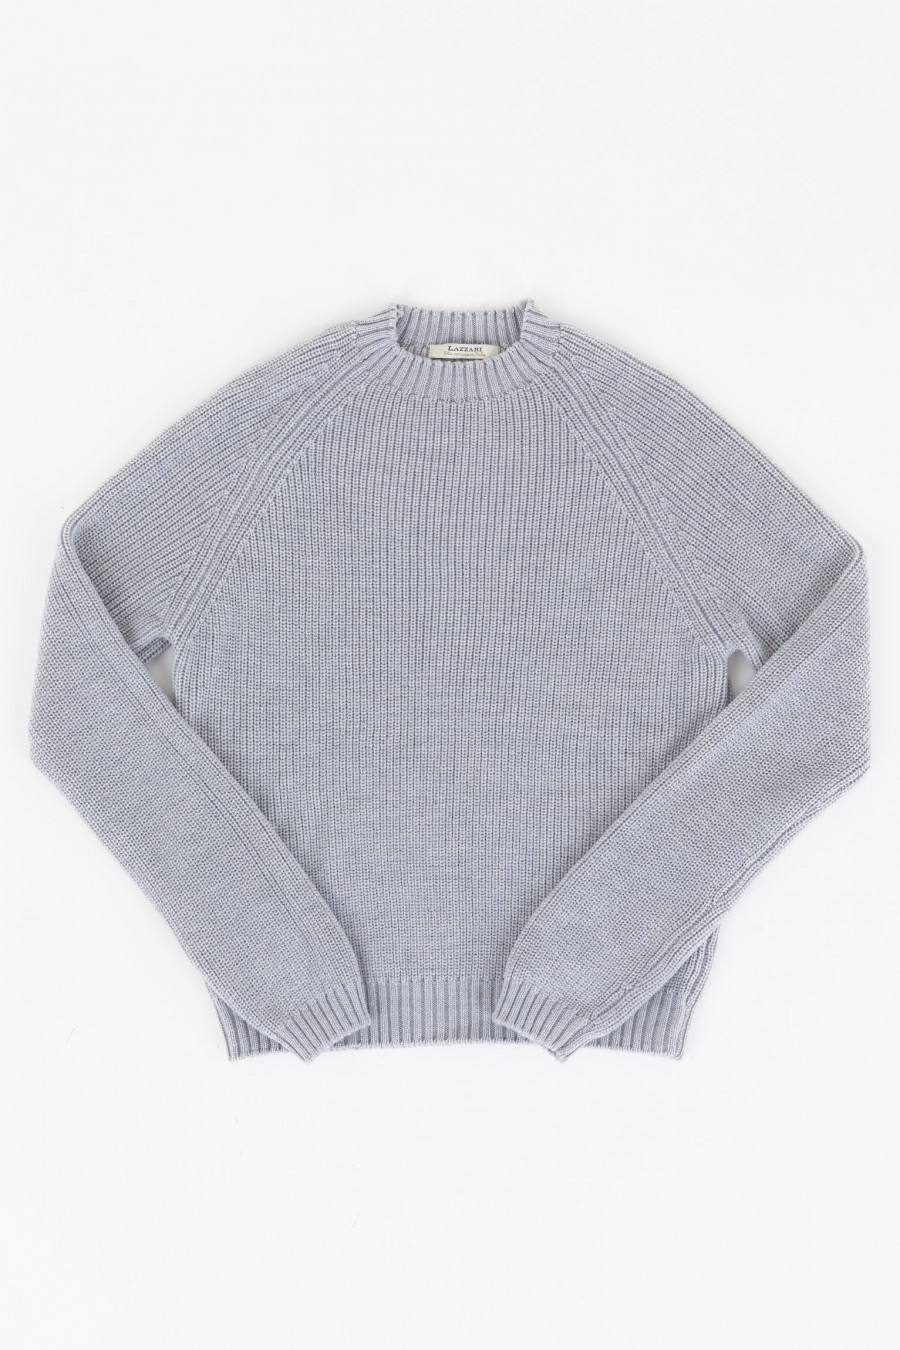 Wool grey sweater with volcano collar